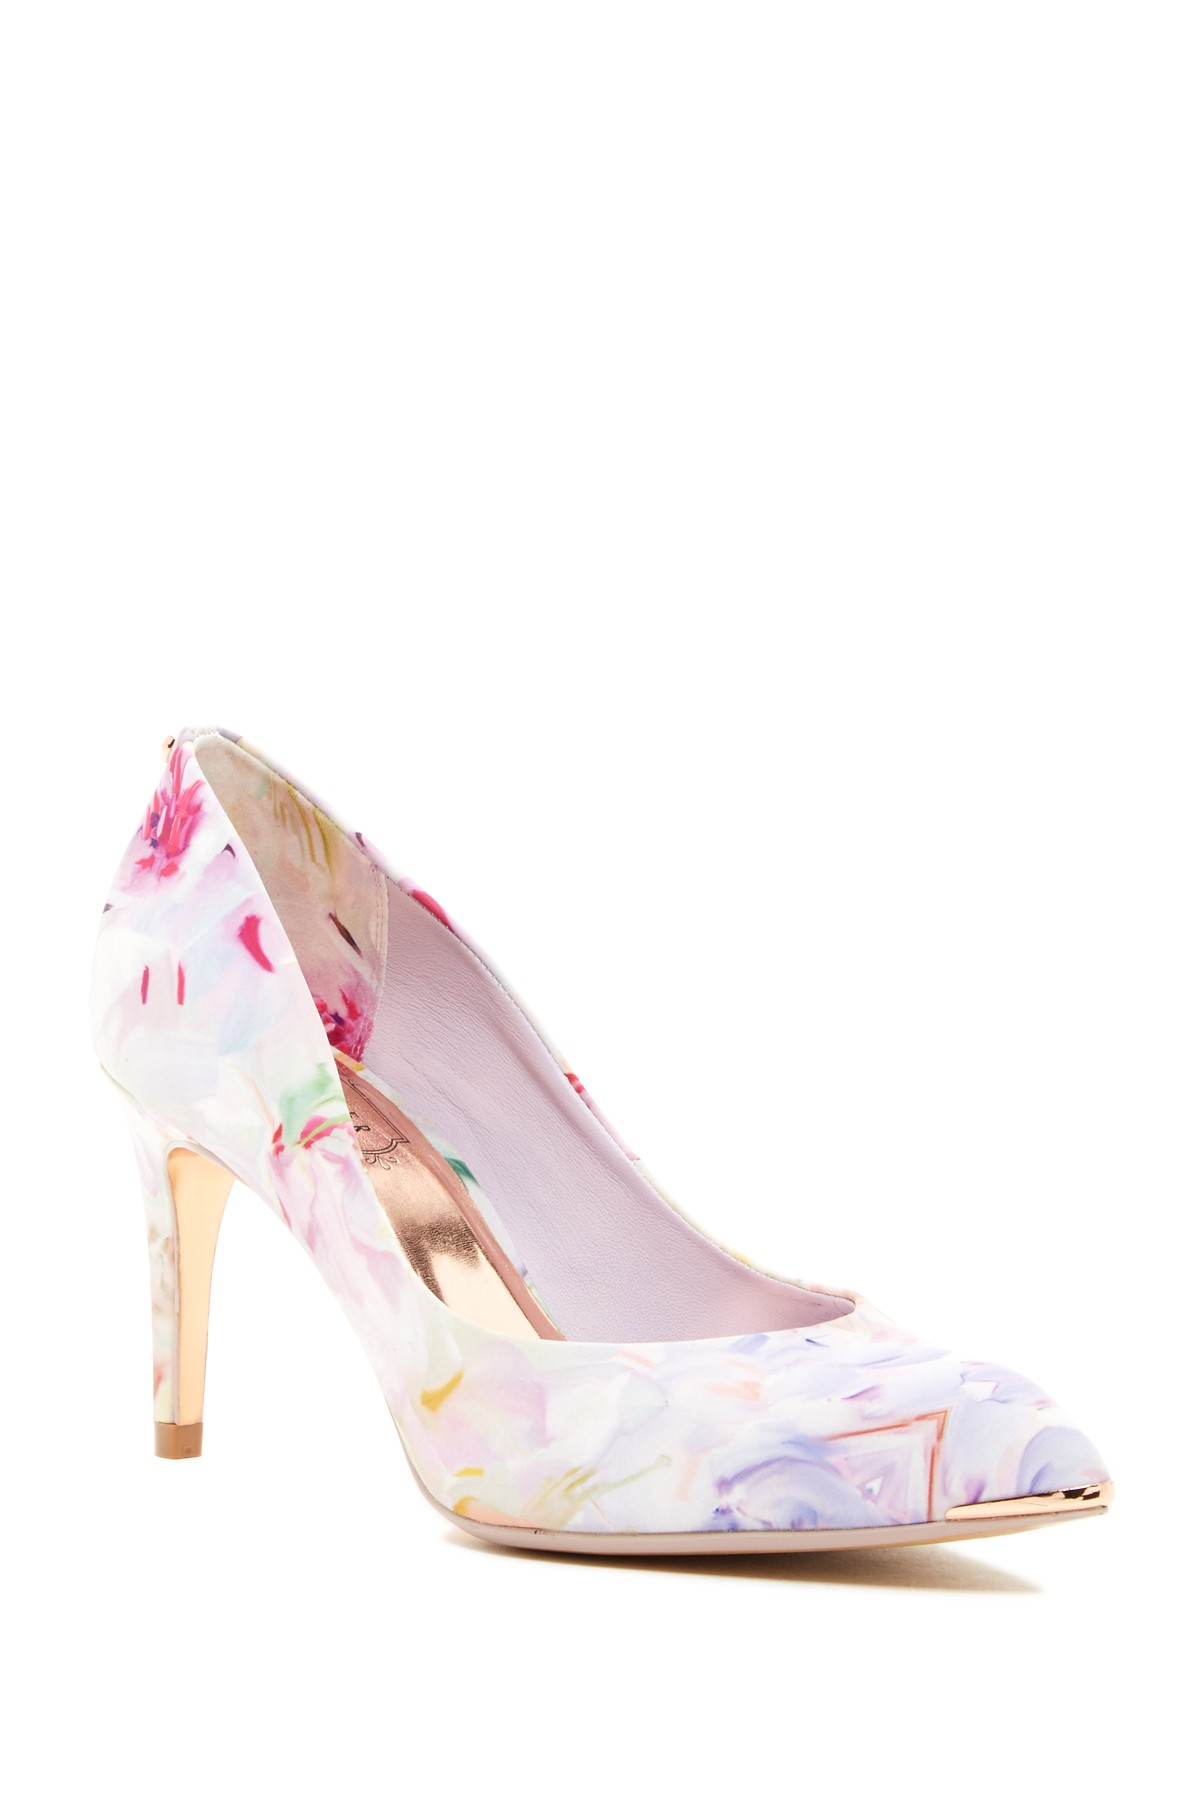 floral pump image of ted baker london charmesa 2 floral satin pump RXVNSSA